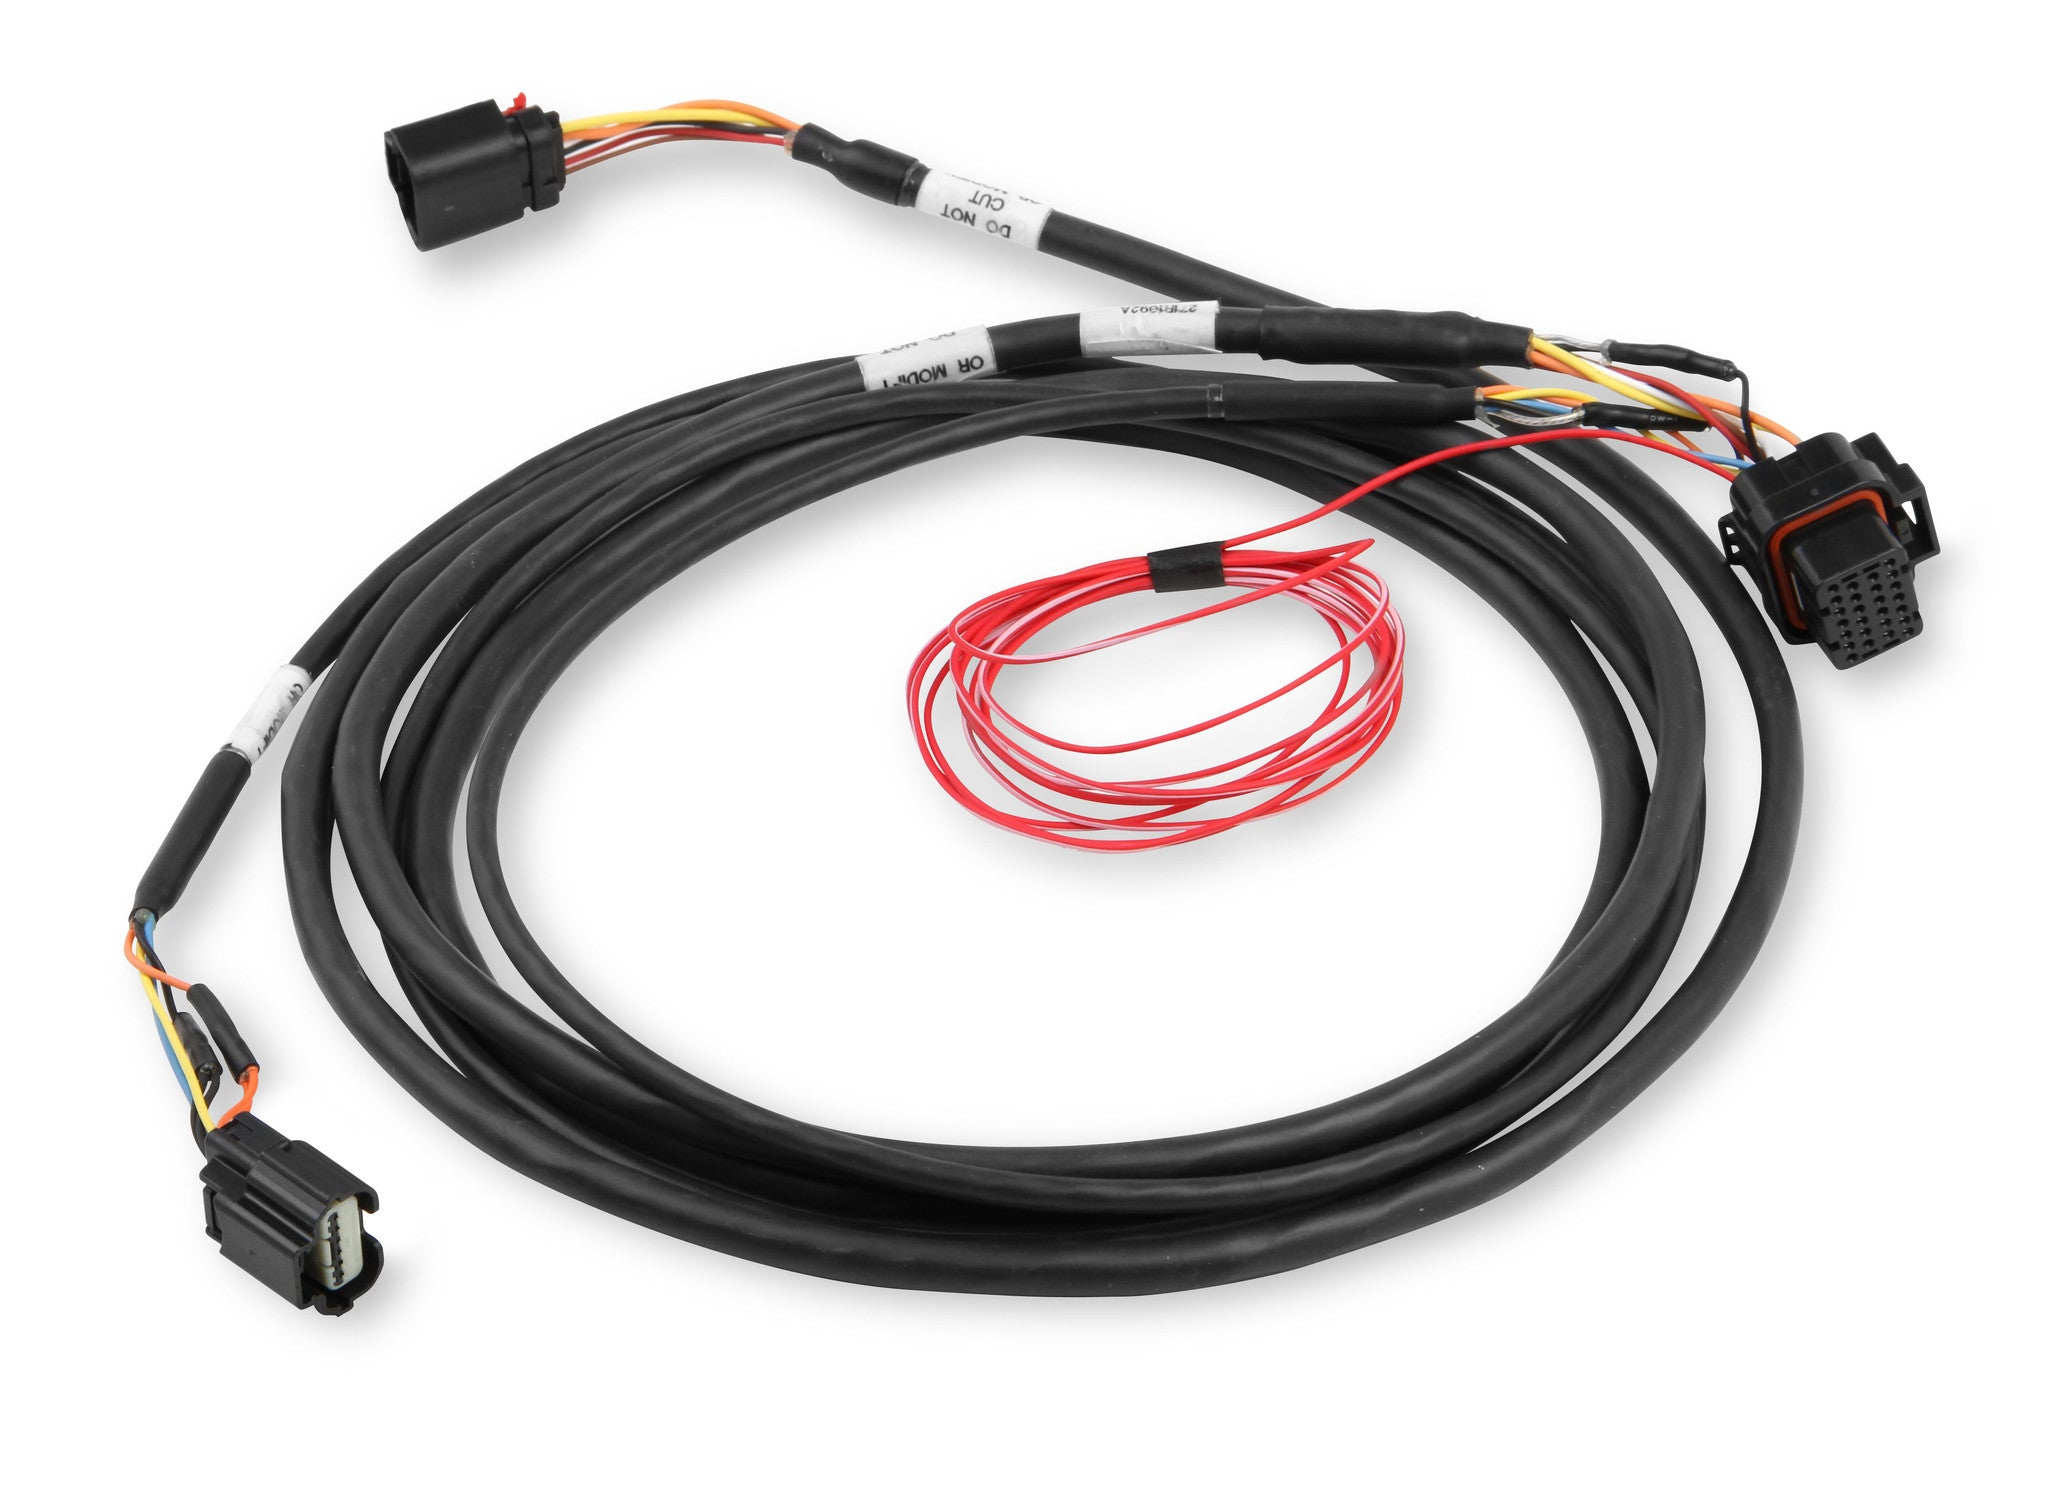 ford coyote drive by wire harness redline motorsports inc rh redline motorsports com